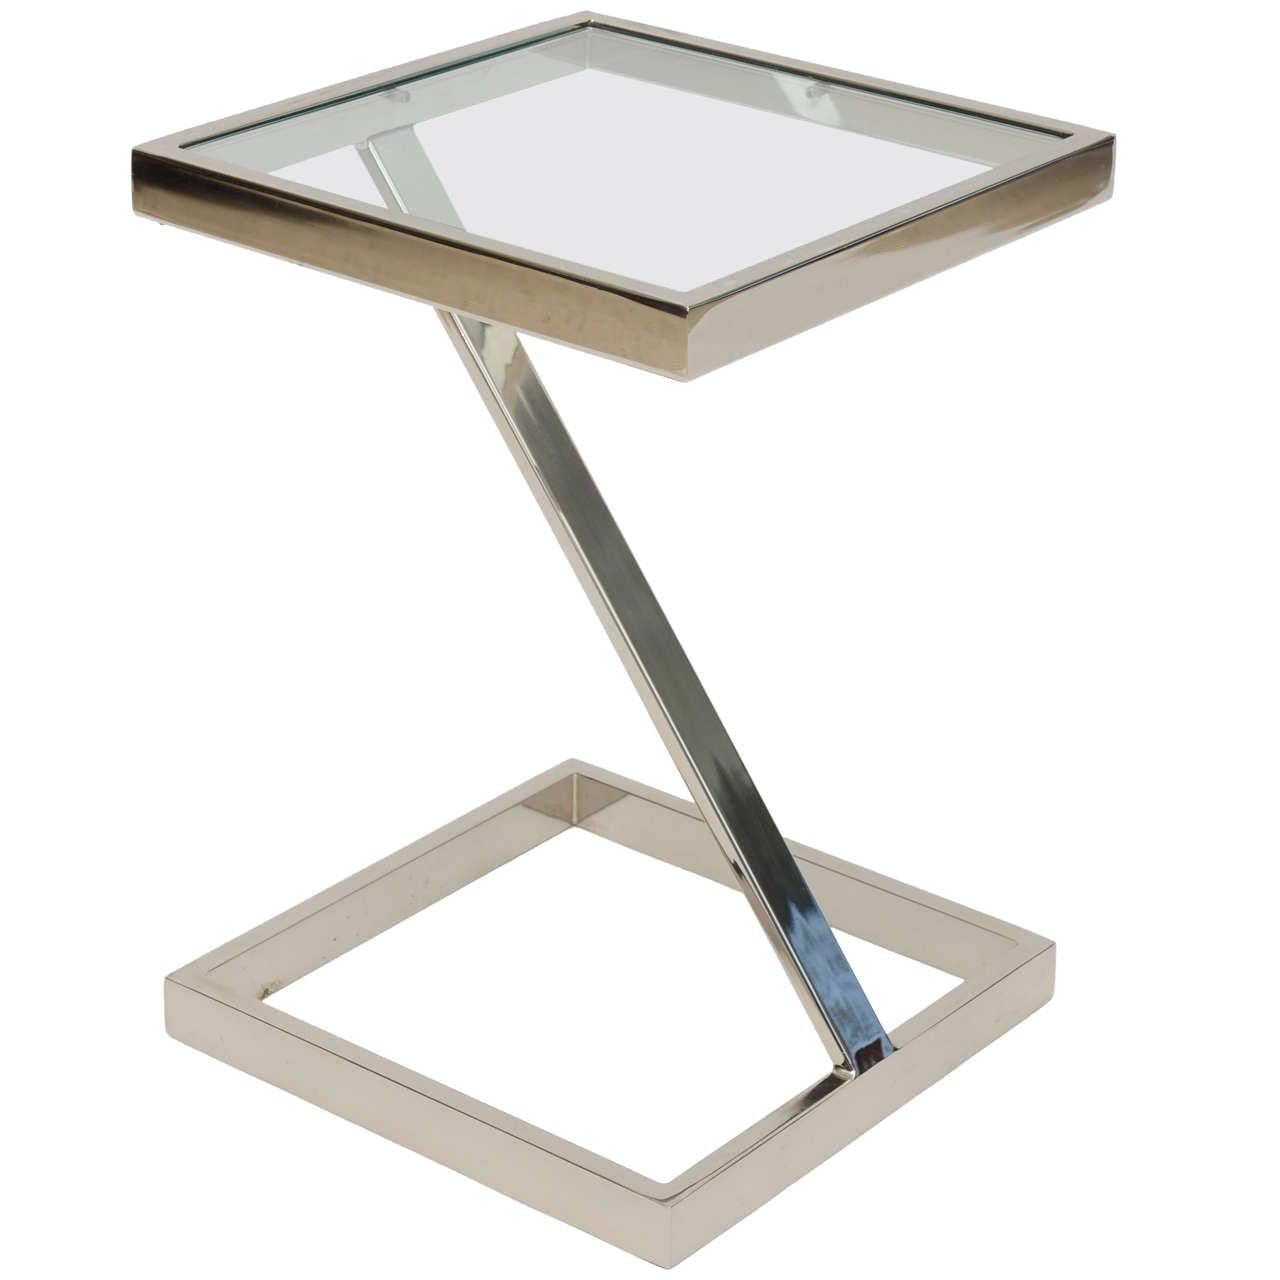 American Modern Chrome and Glass Side Table, Pace Collection